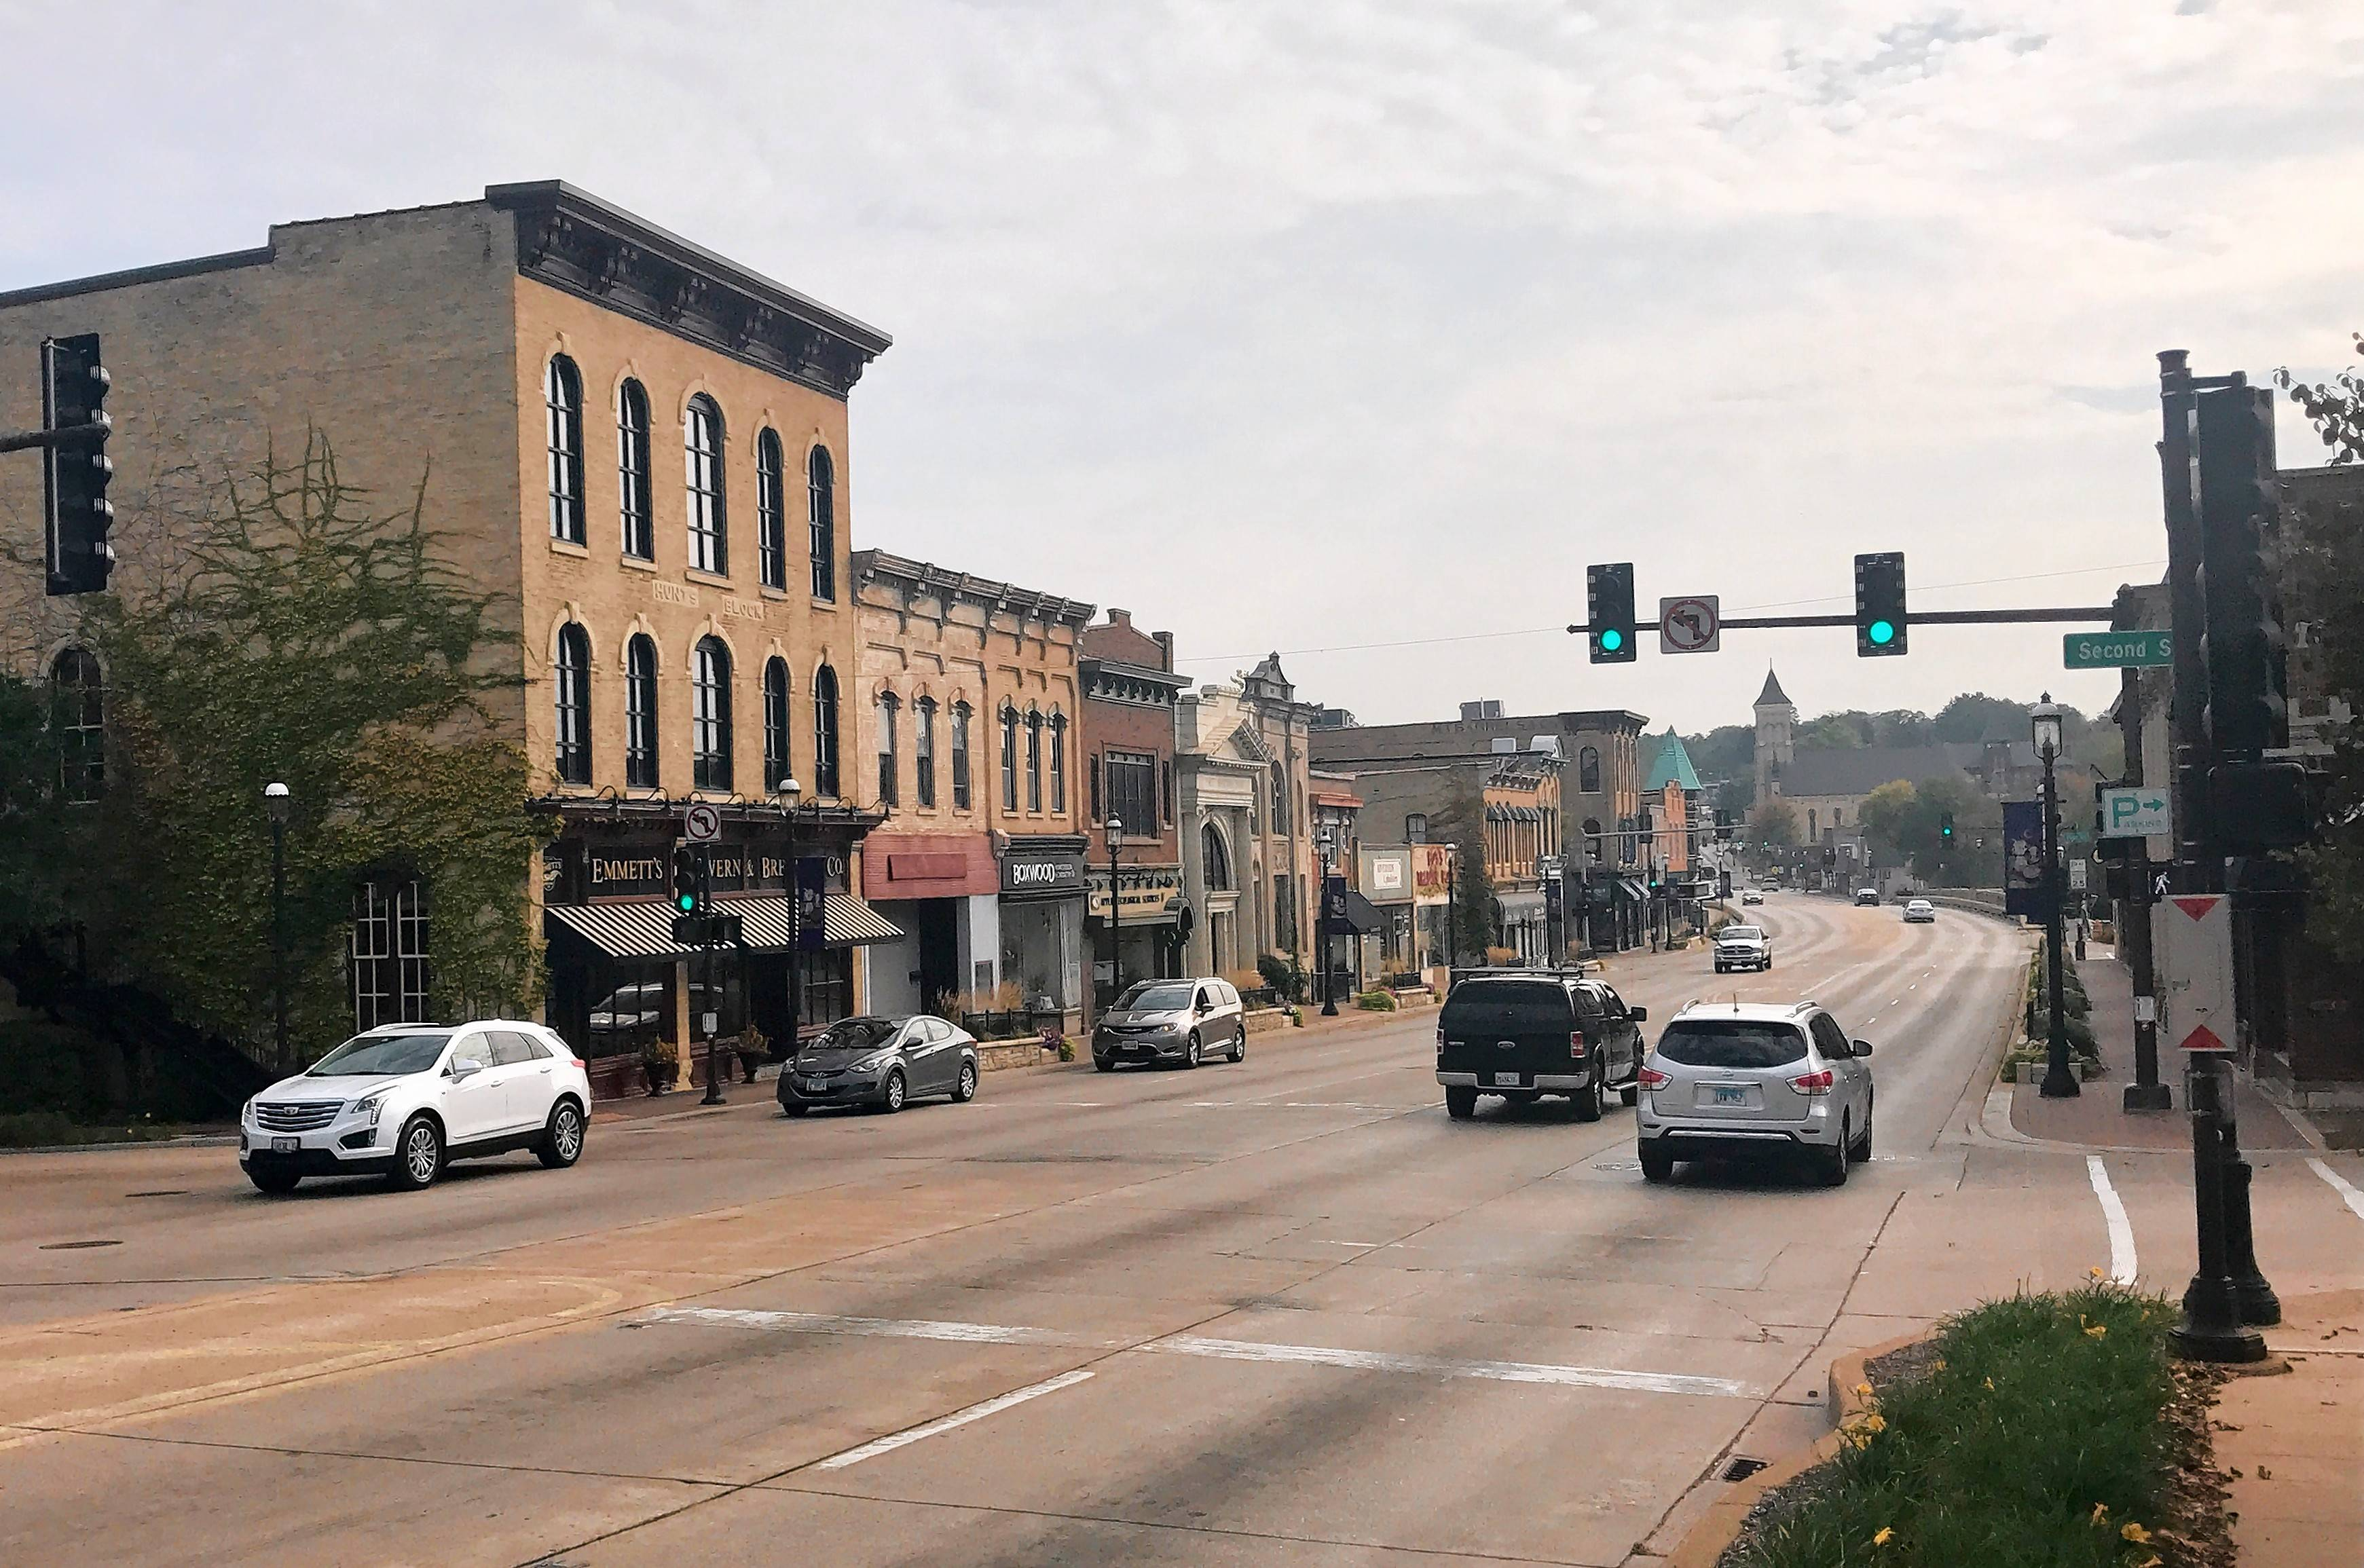 West Dundee has agreed to exclude new residential developments from the provisions of a proposed new tax increment financing district, which includes downtown Main Street.